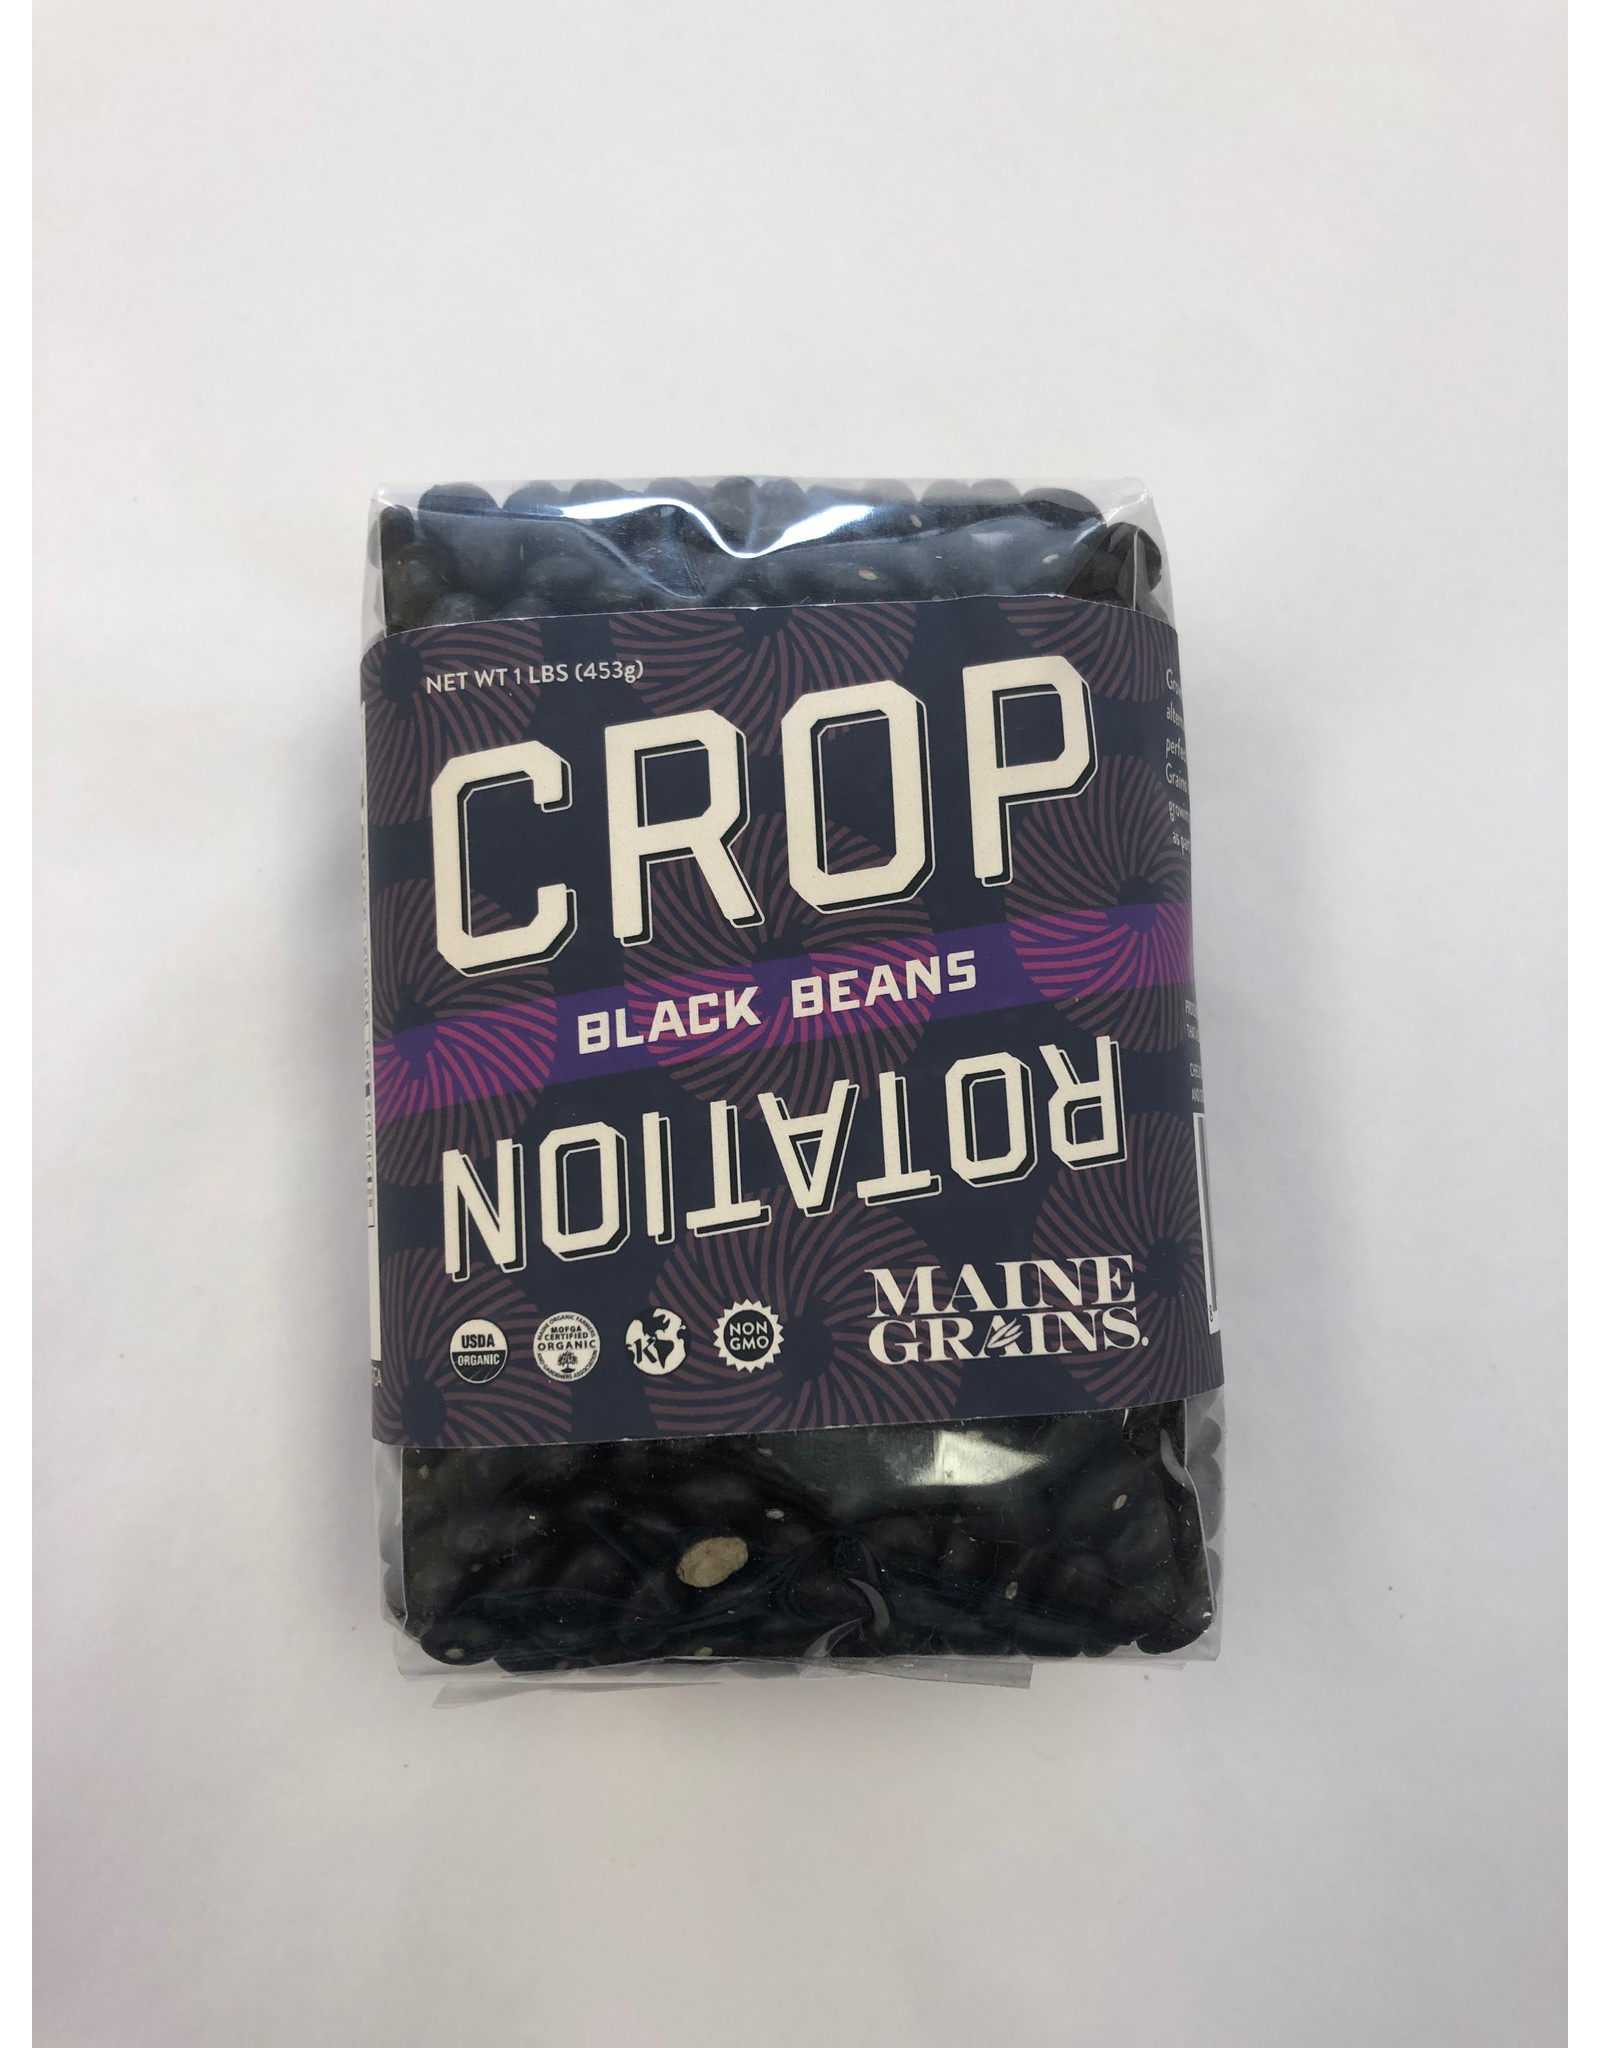 Maine Grains Maine Grains Organic Black Beans 1lbs